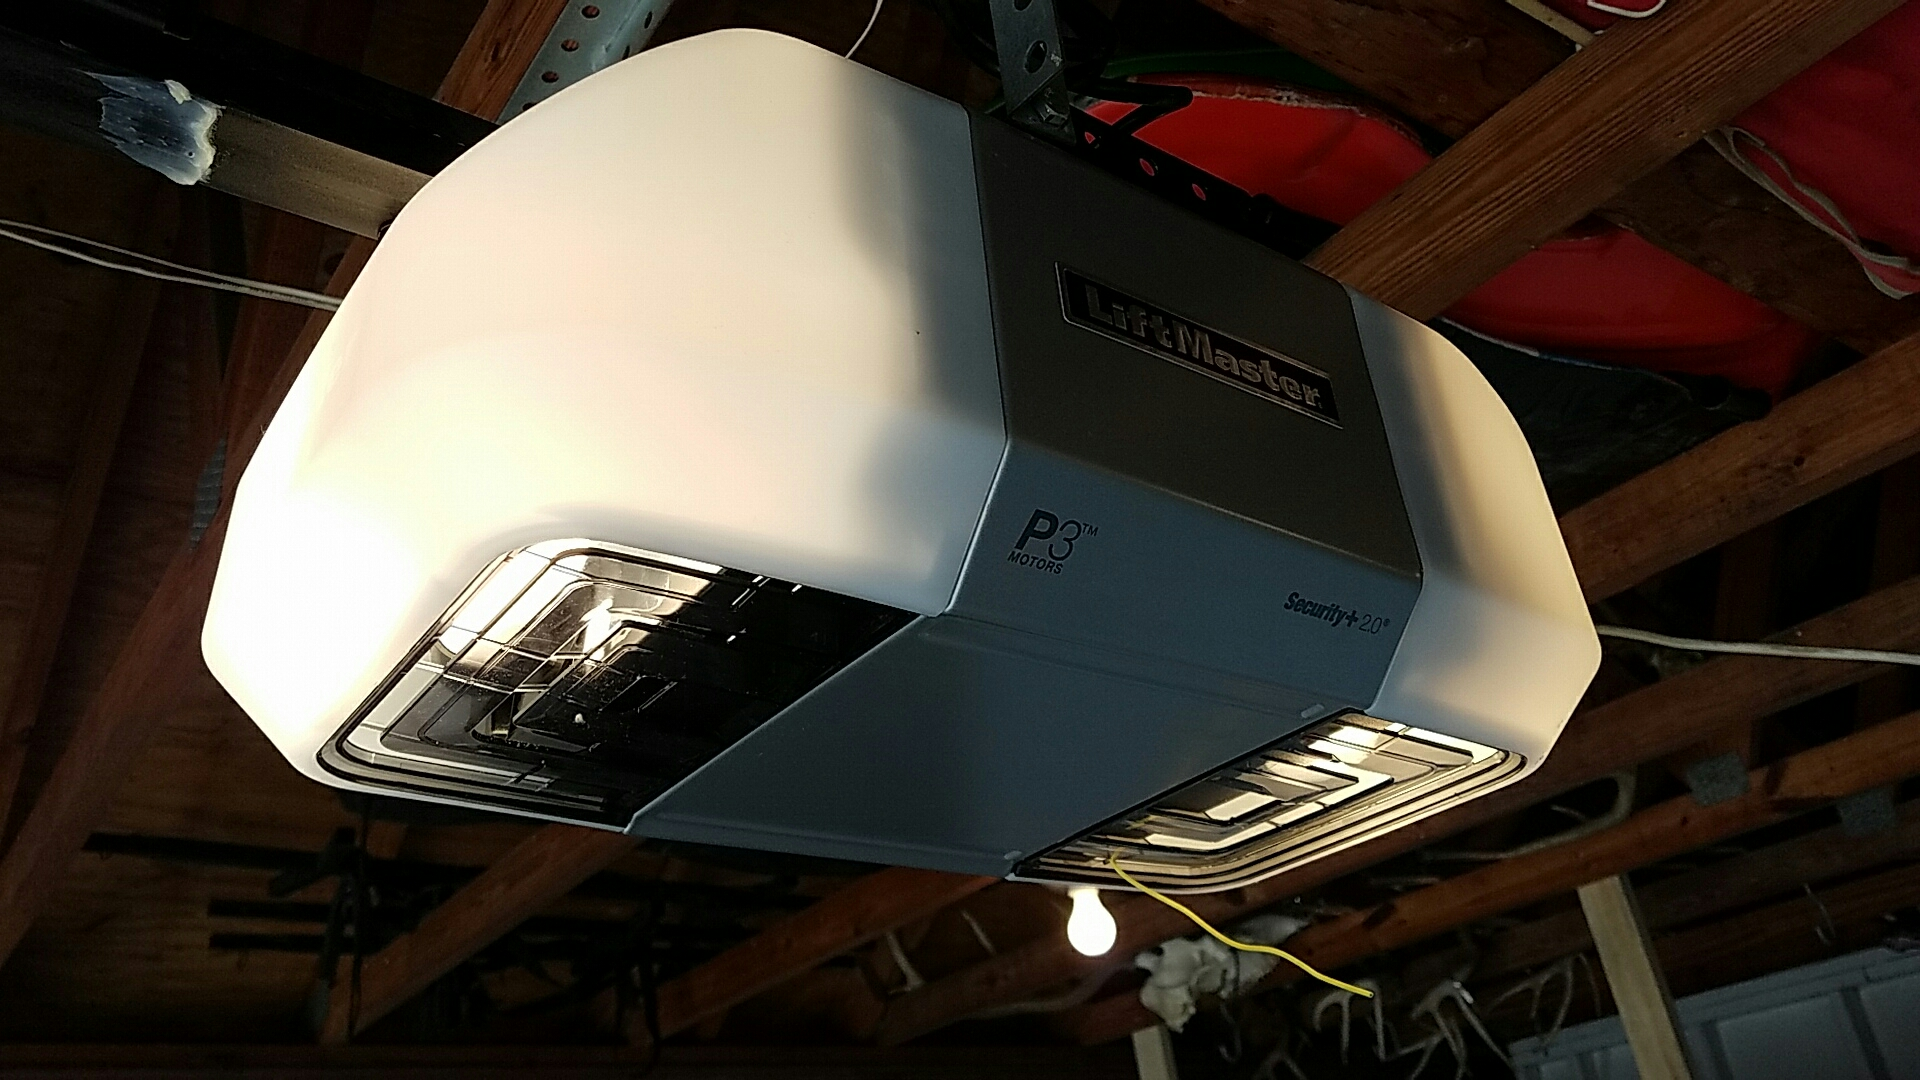 Replaced garage door opener with a new liftmaster